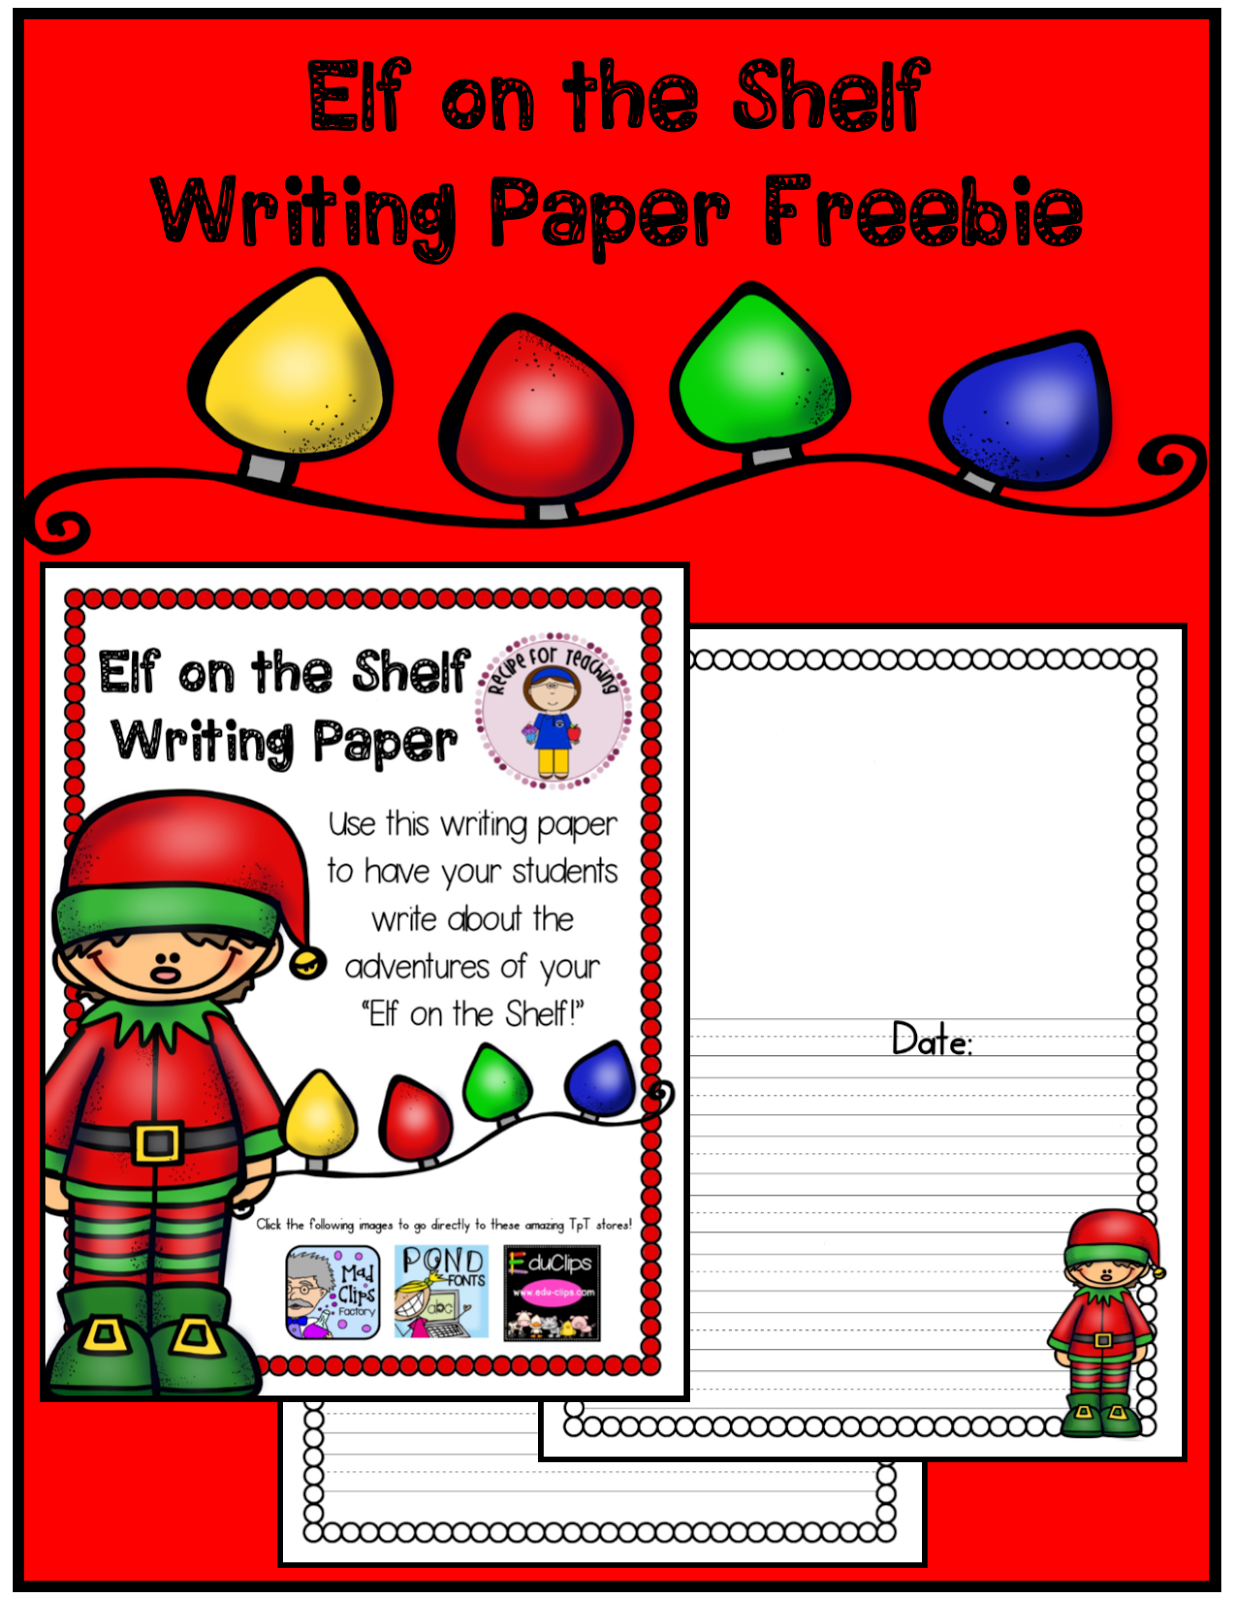 http://www.teacherspayteachers.com/Product/Elf-on-the-Shelf-Writing-1532158